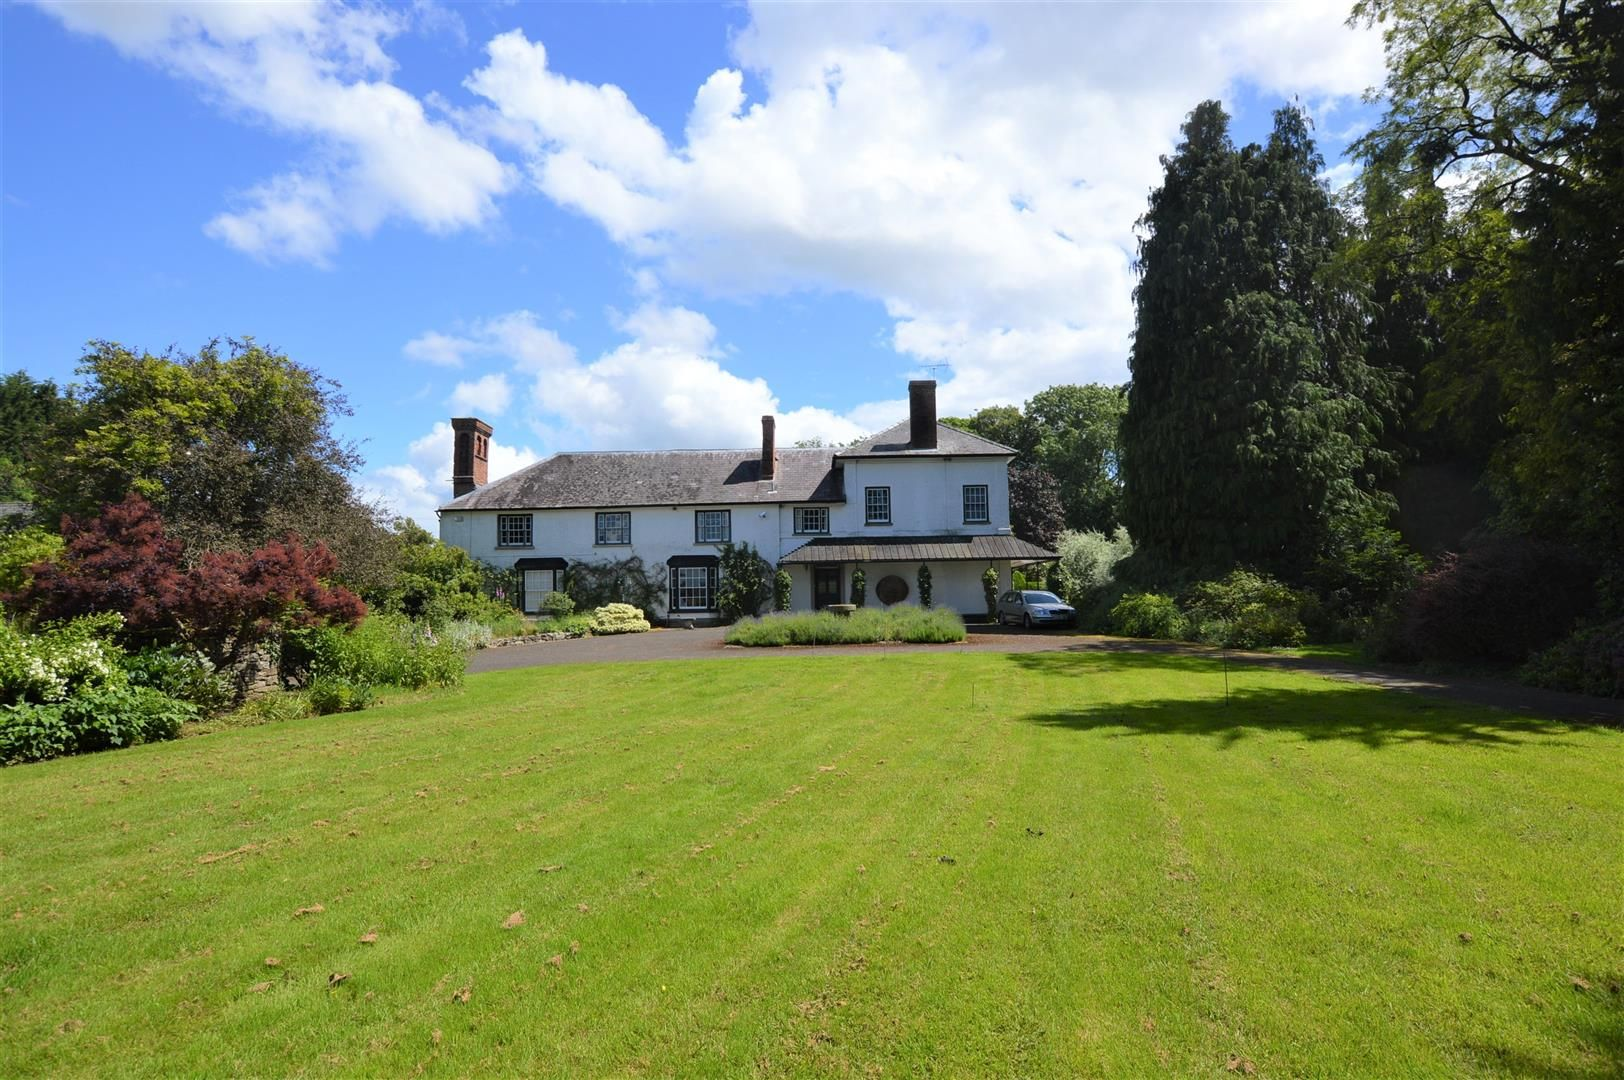 6 bed country-house for sale in Pembridge, HR6